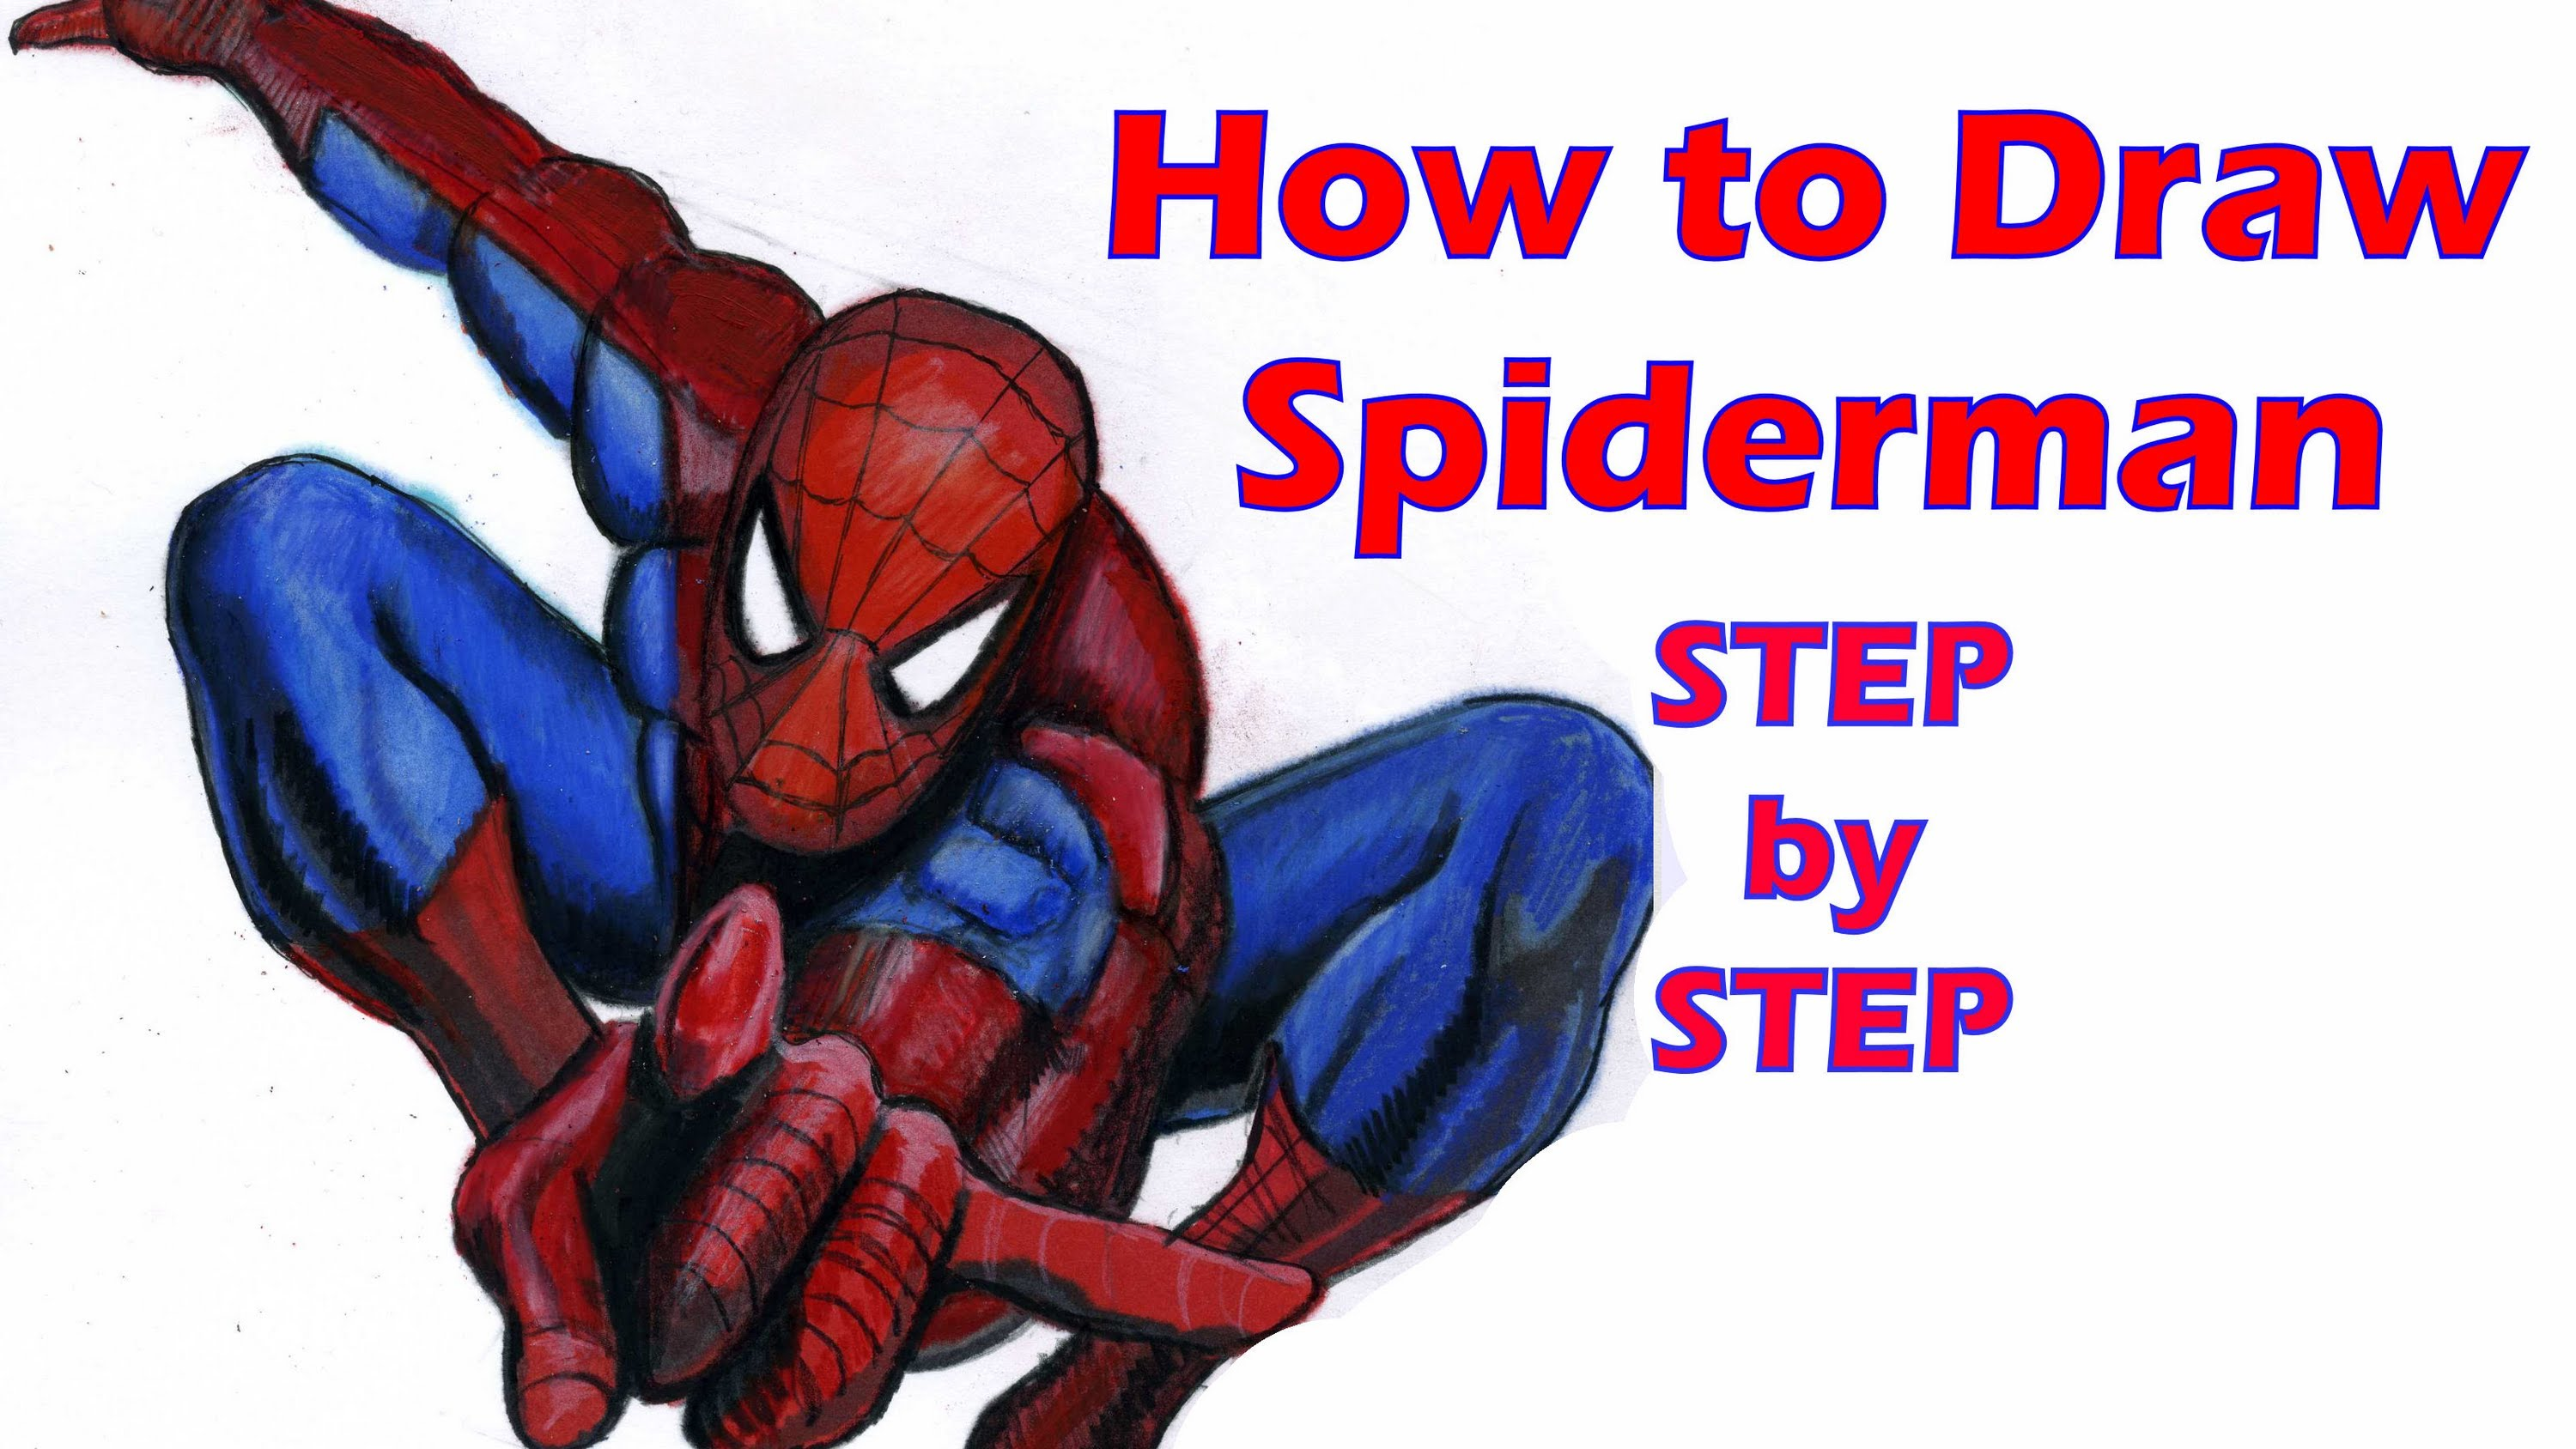 Drawn spiderman step by step  Download to Clip Spiderman